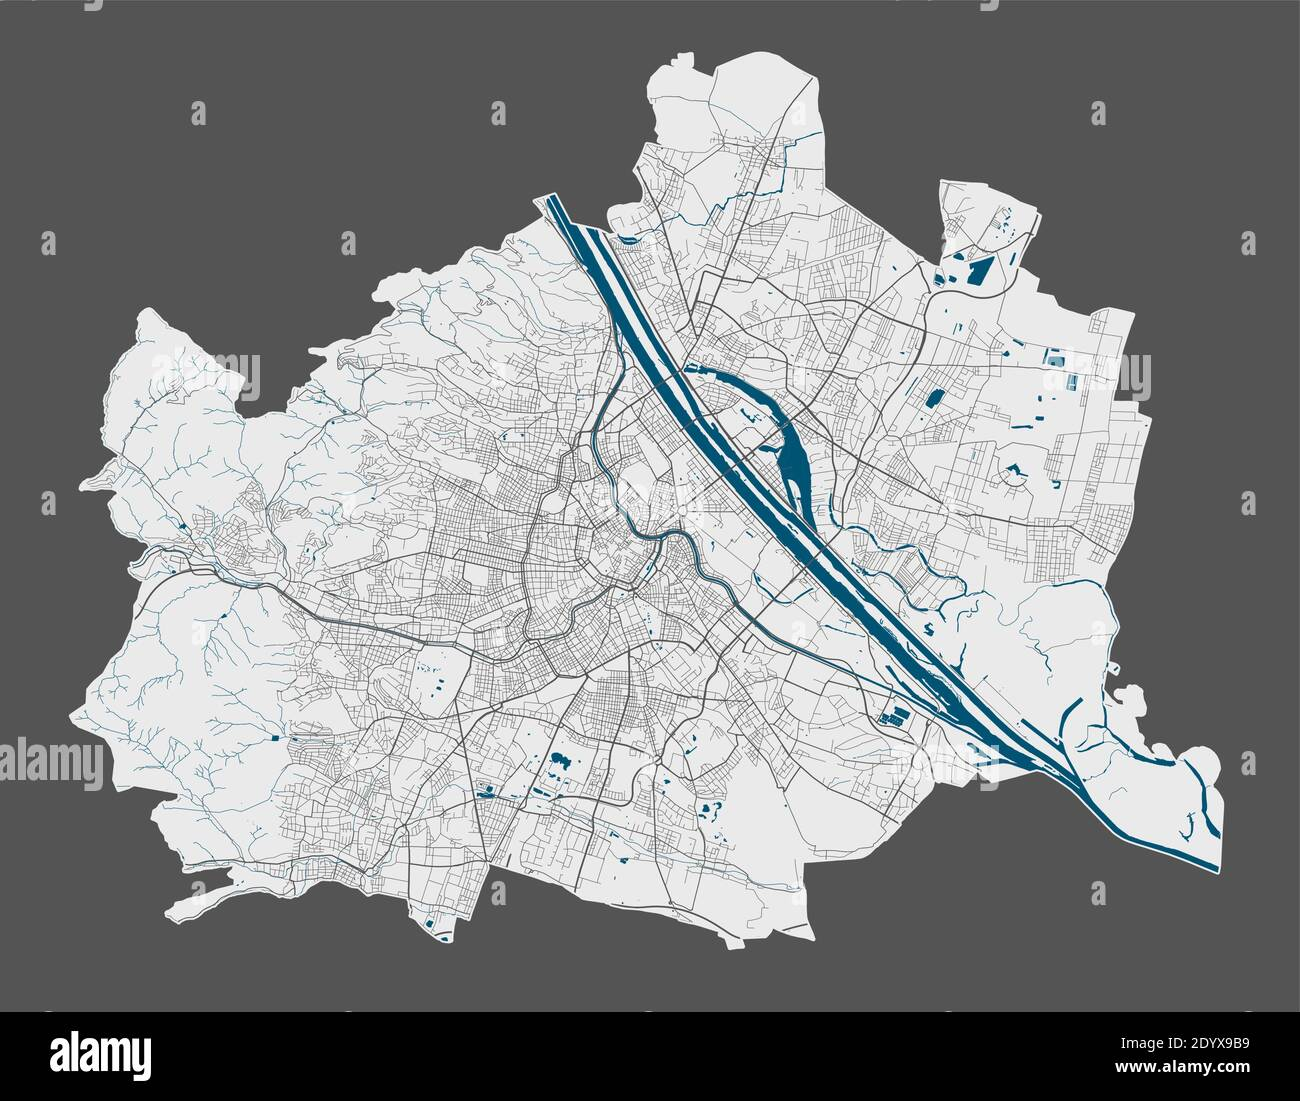 Vienna map. Detailed vector map of Vienna city administrative area. Poster with streets and water on grey background. Stock Vector